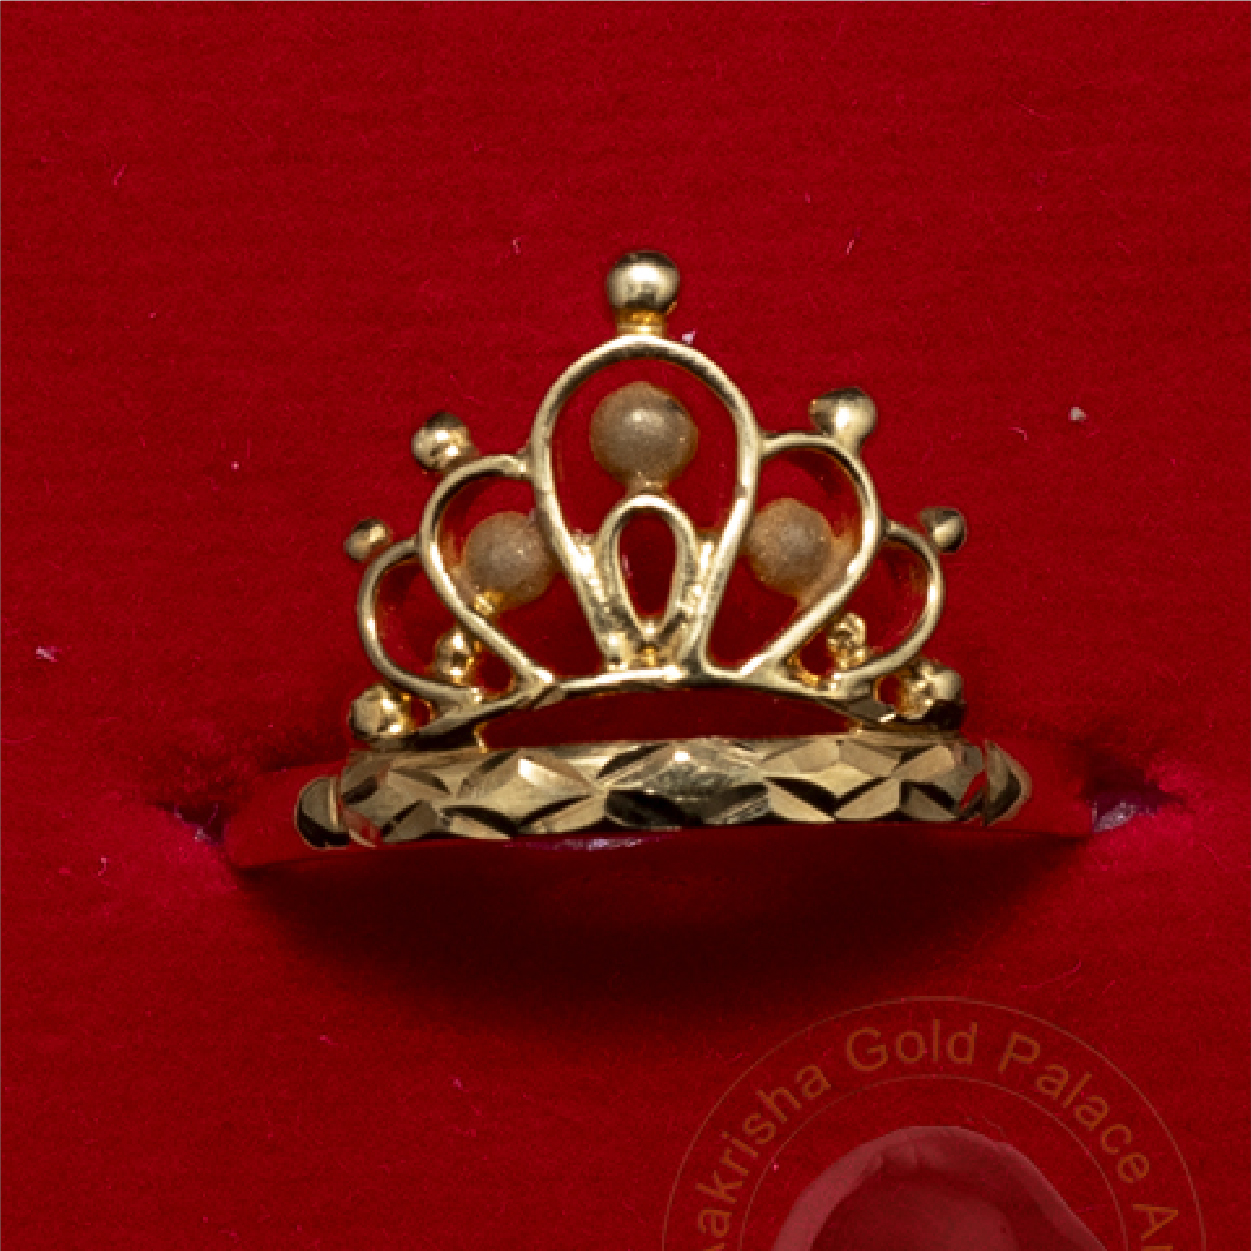 Crown Designed Rings